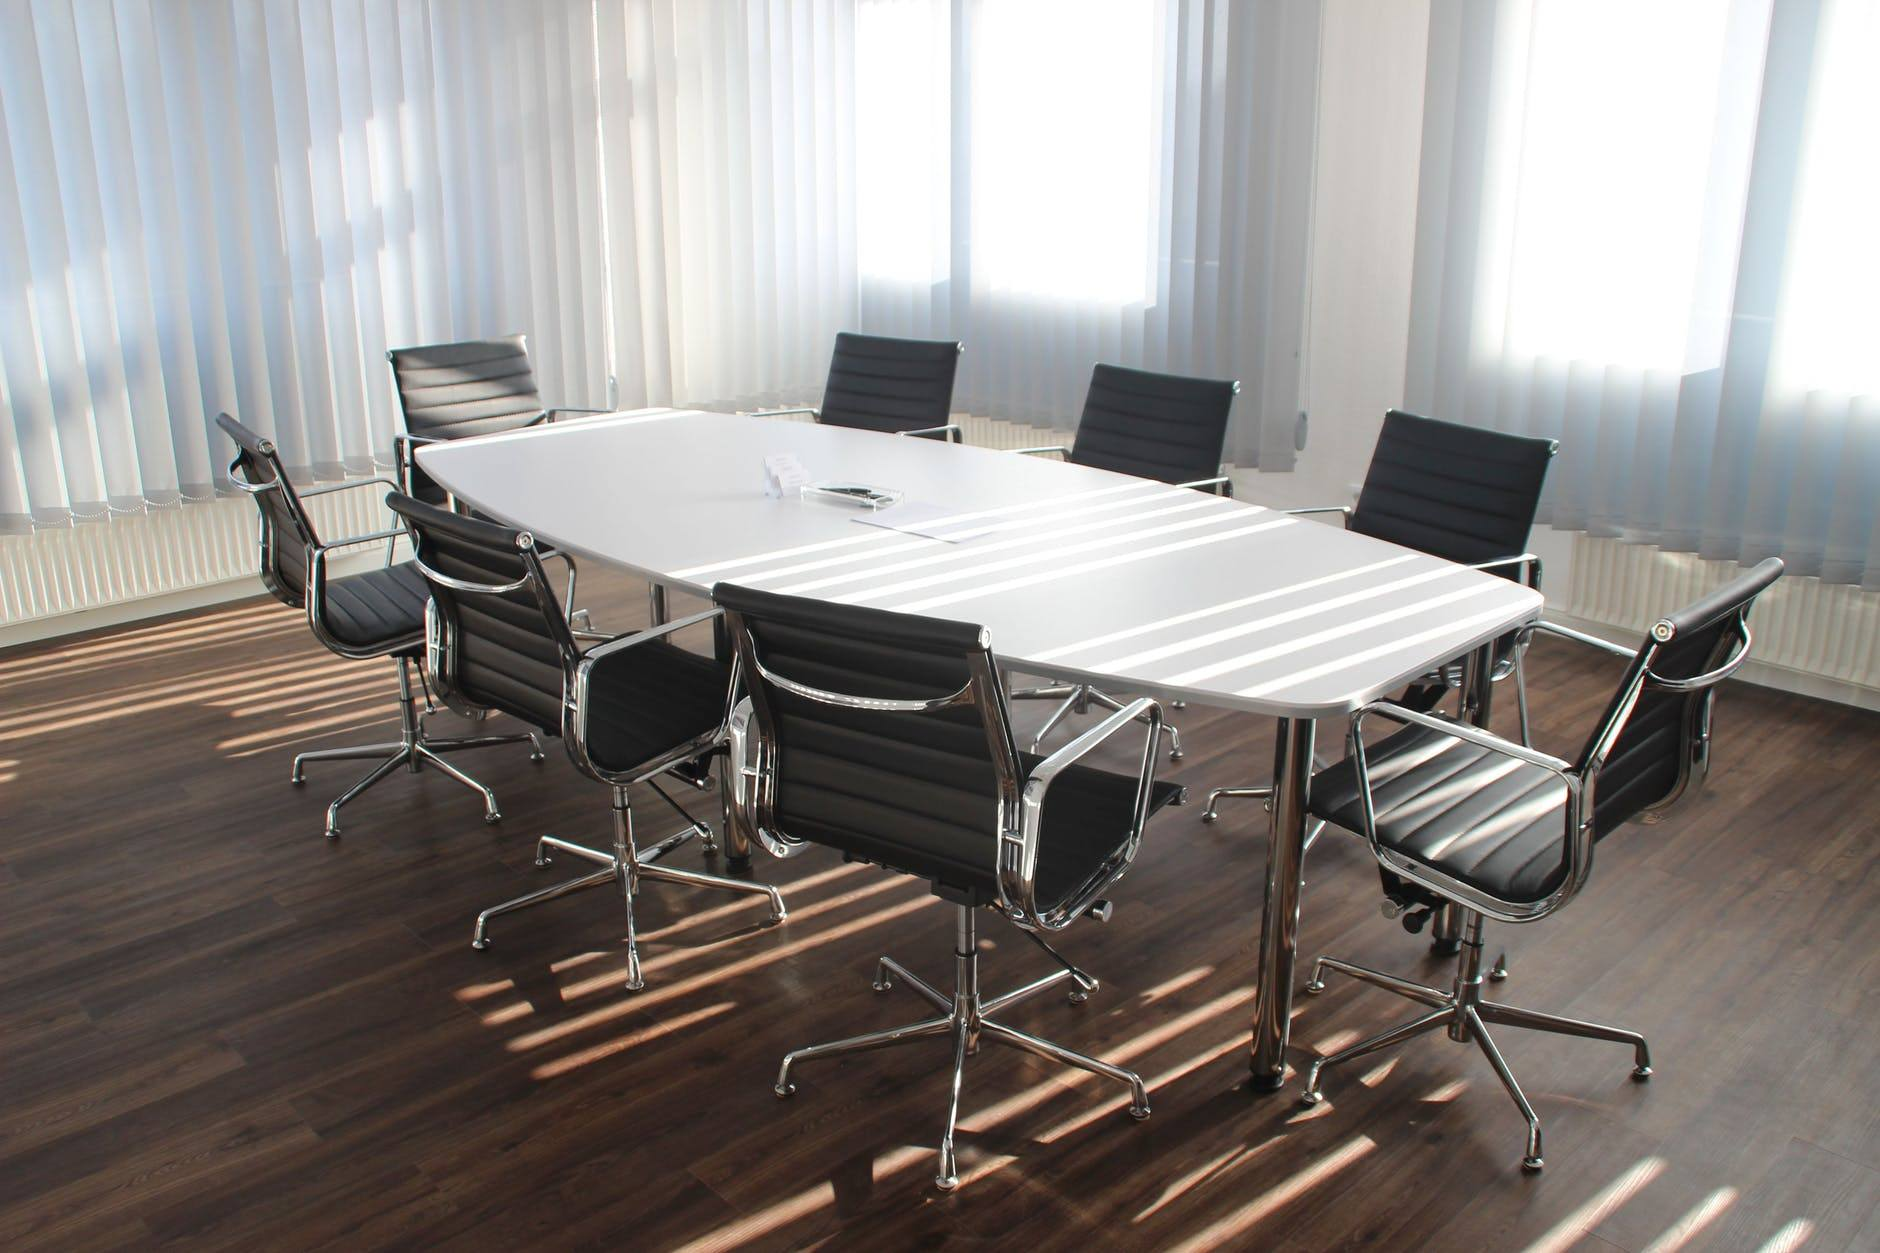 The CEO Shadow - How The Top Leaders Define The Narratives?